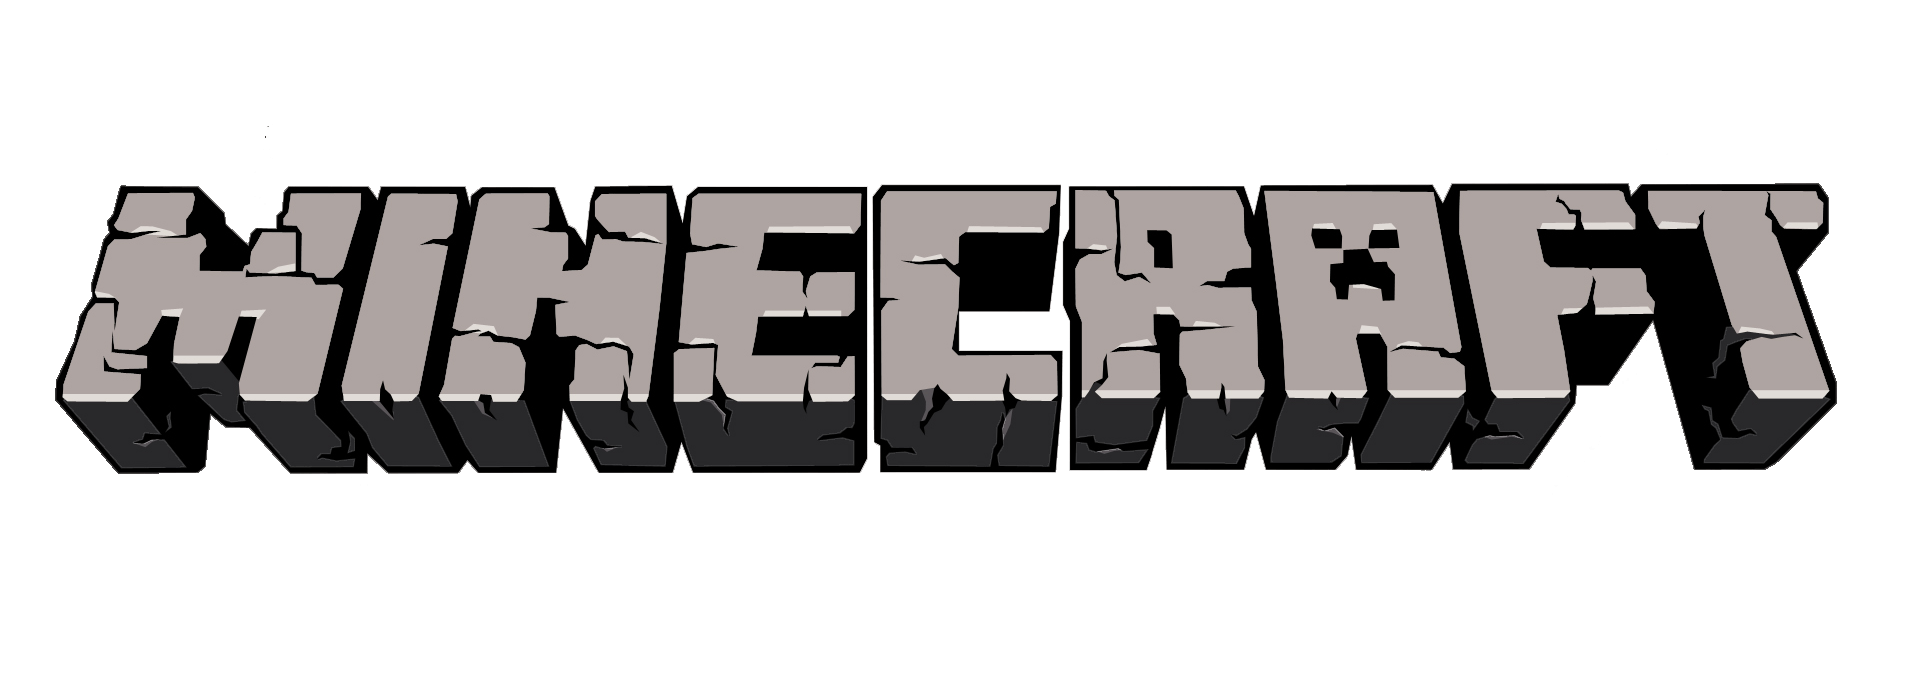 graphic free stock Images qygjxz. Minecraft black and white clipart